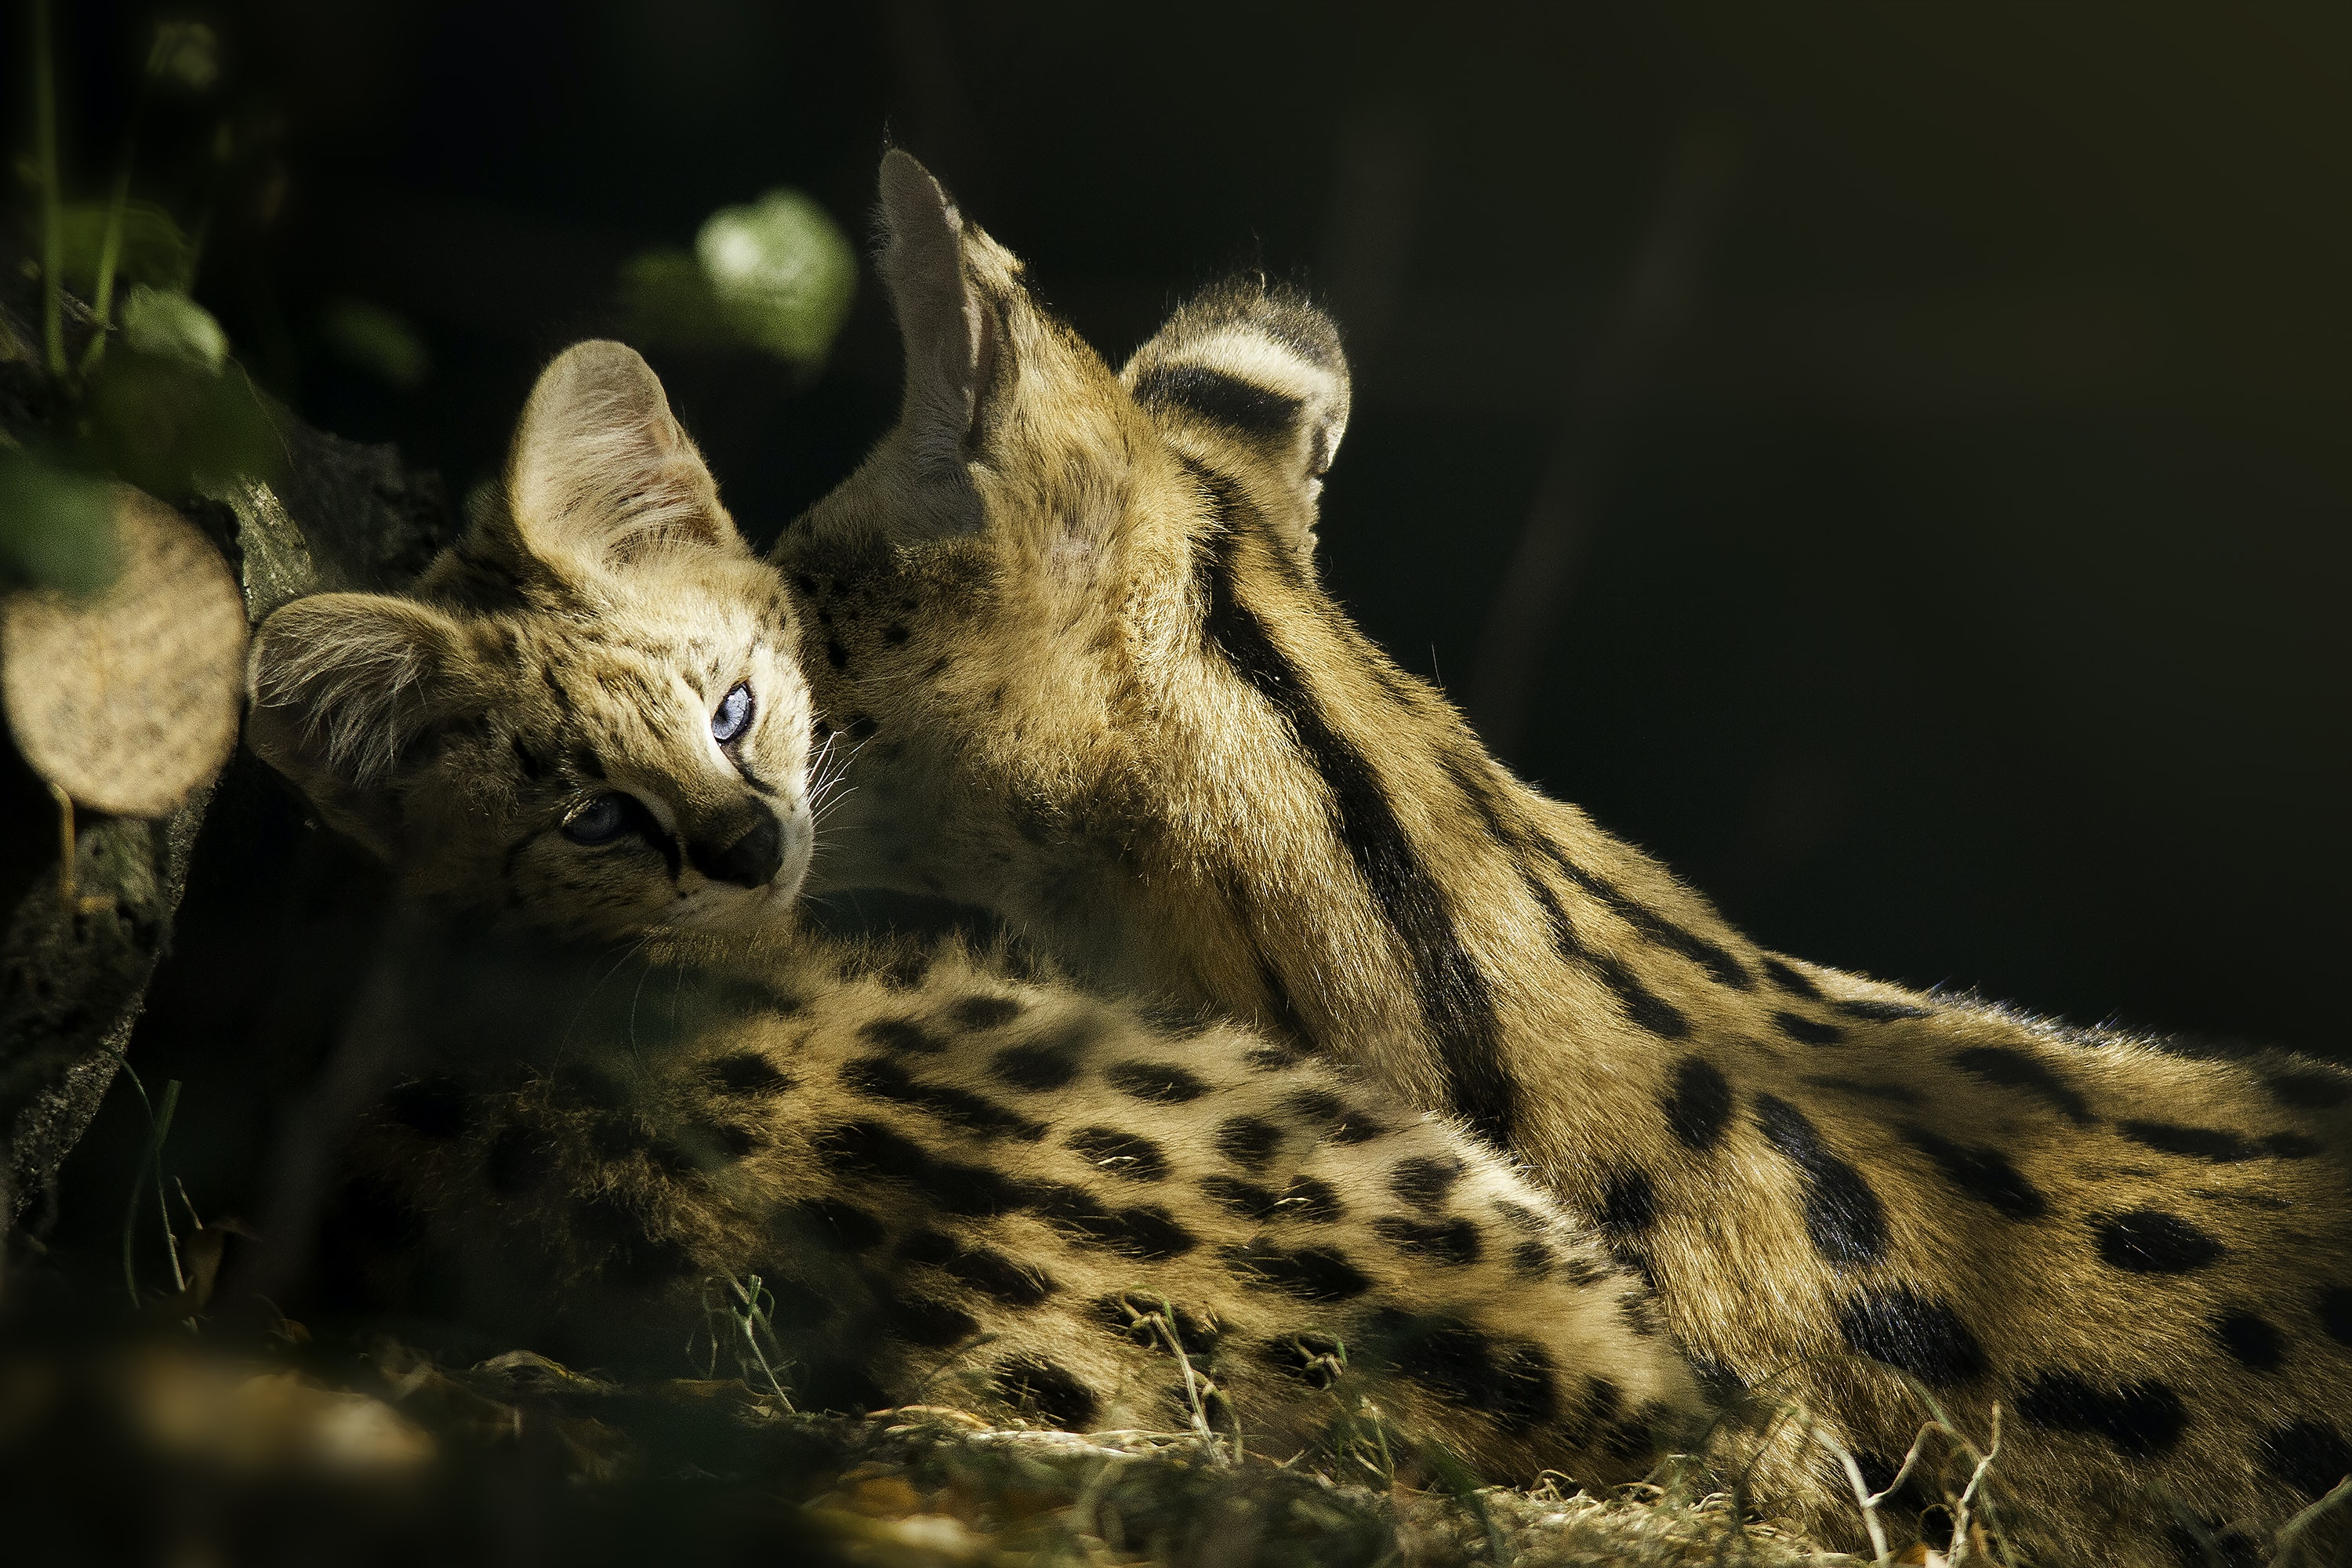 cheetah and cub on forest